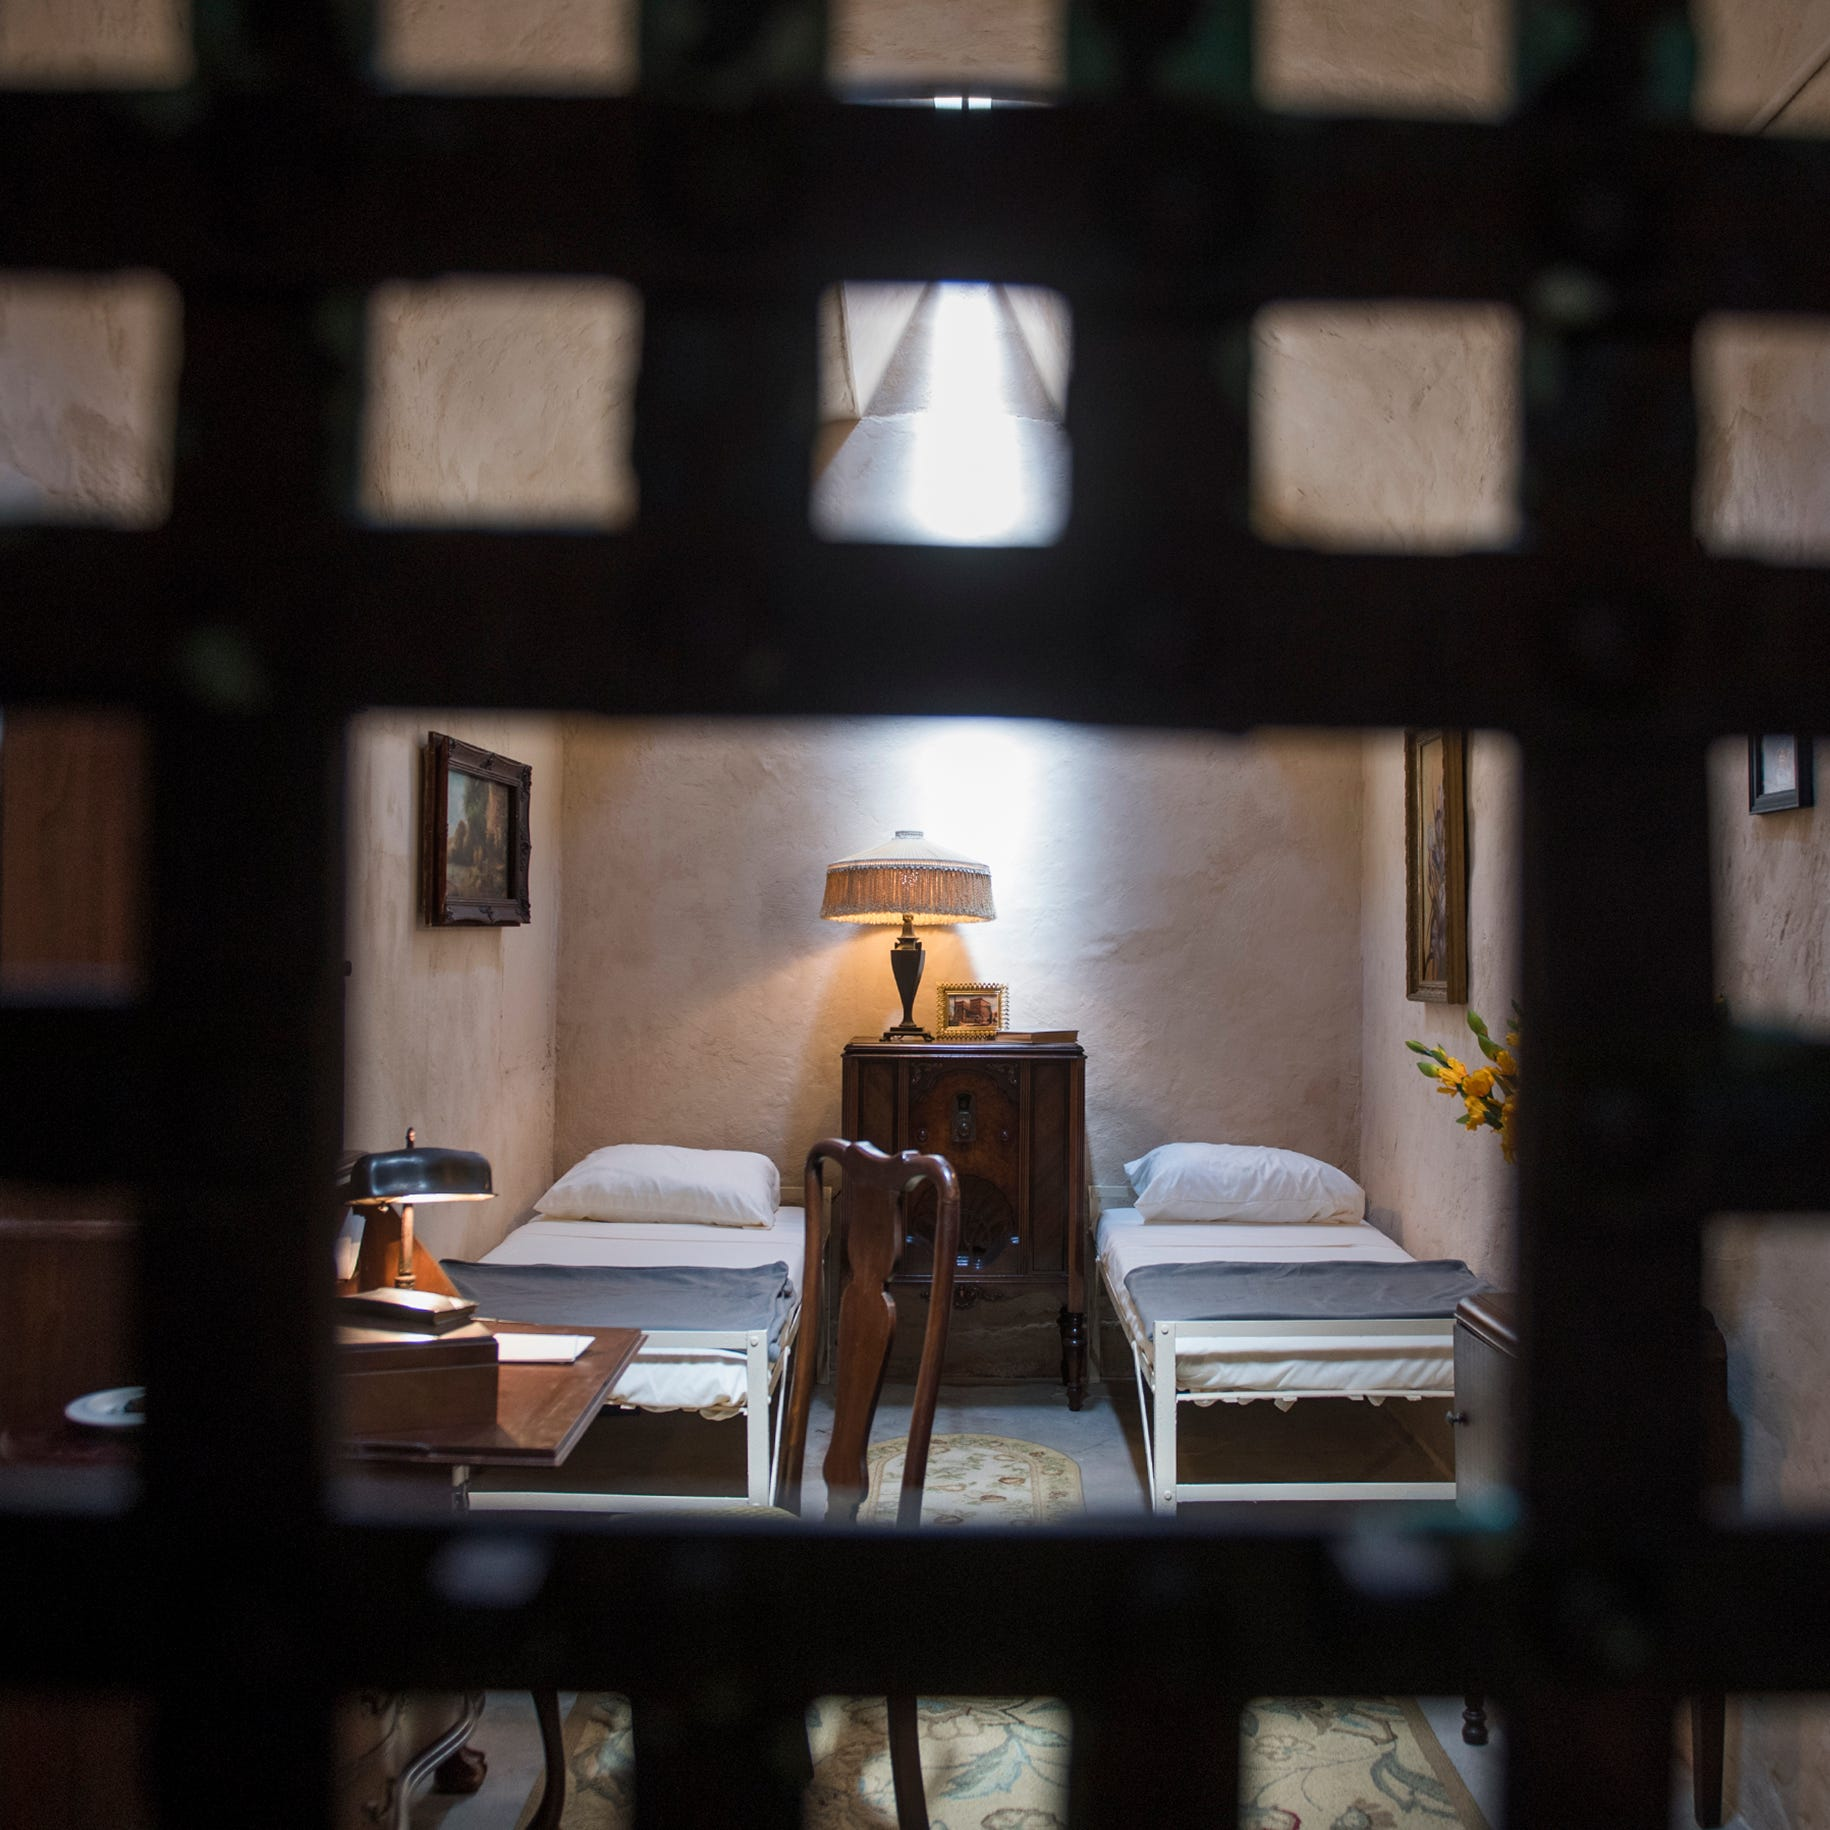 He's been dead for 72 years, but Al Capone just got a cellmate at Eastern State Penitentiary